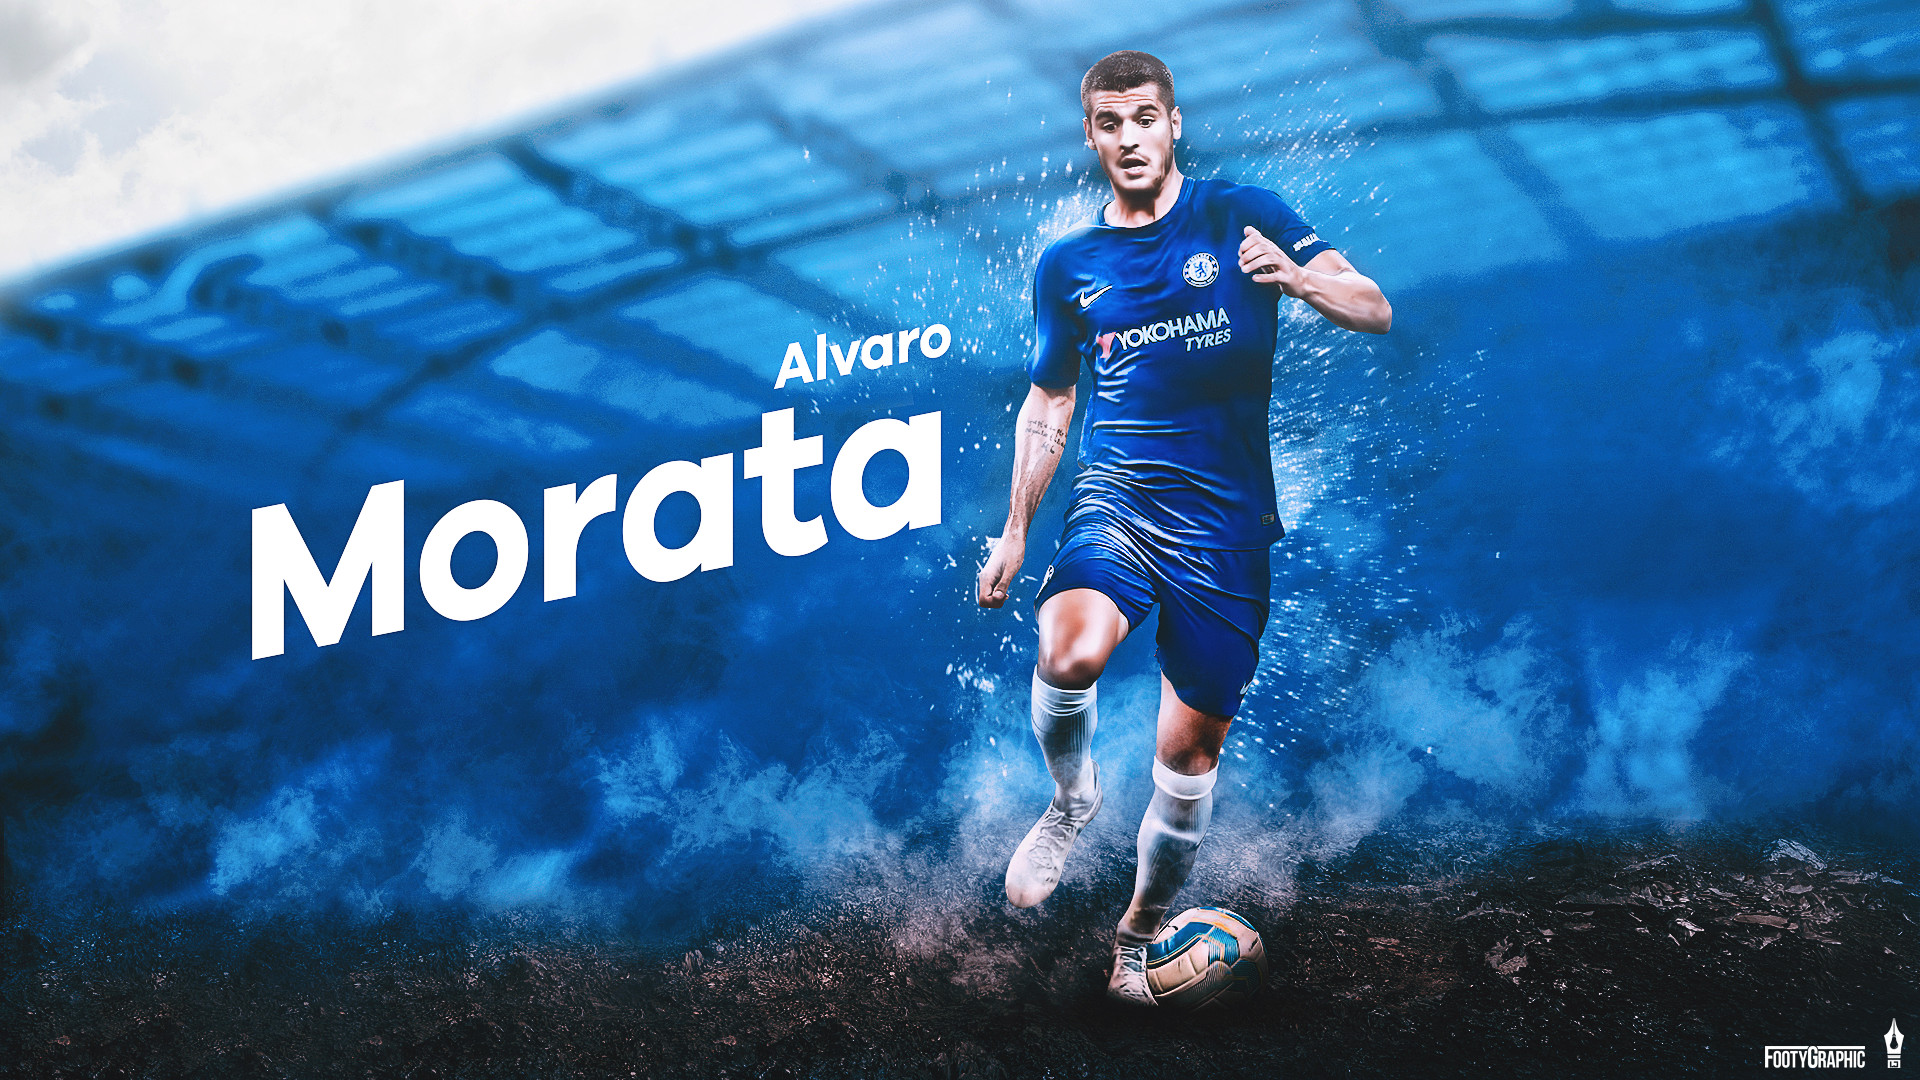 Chelsea wallpapers 2017 hd 70 background pictures - Morata hd wallpapers ...